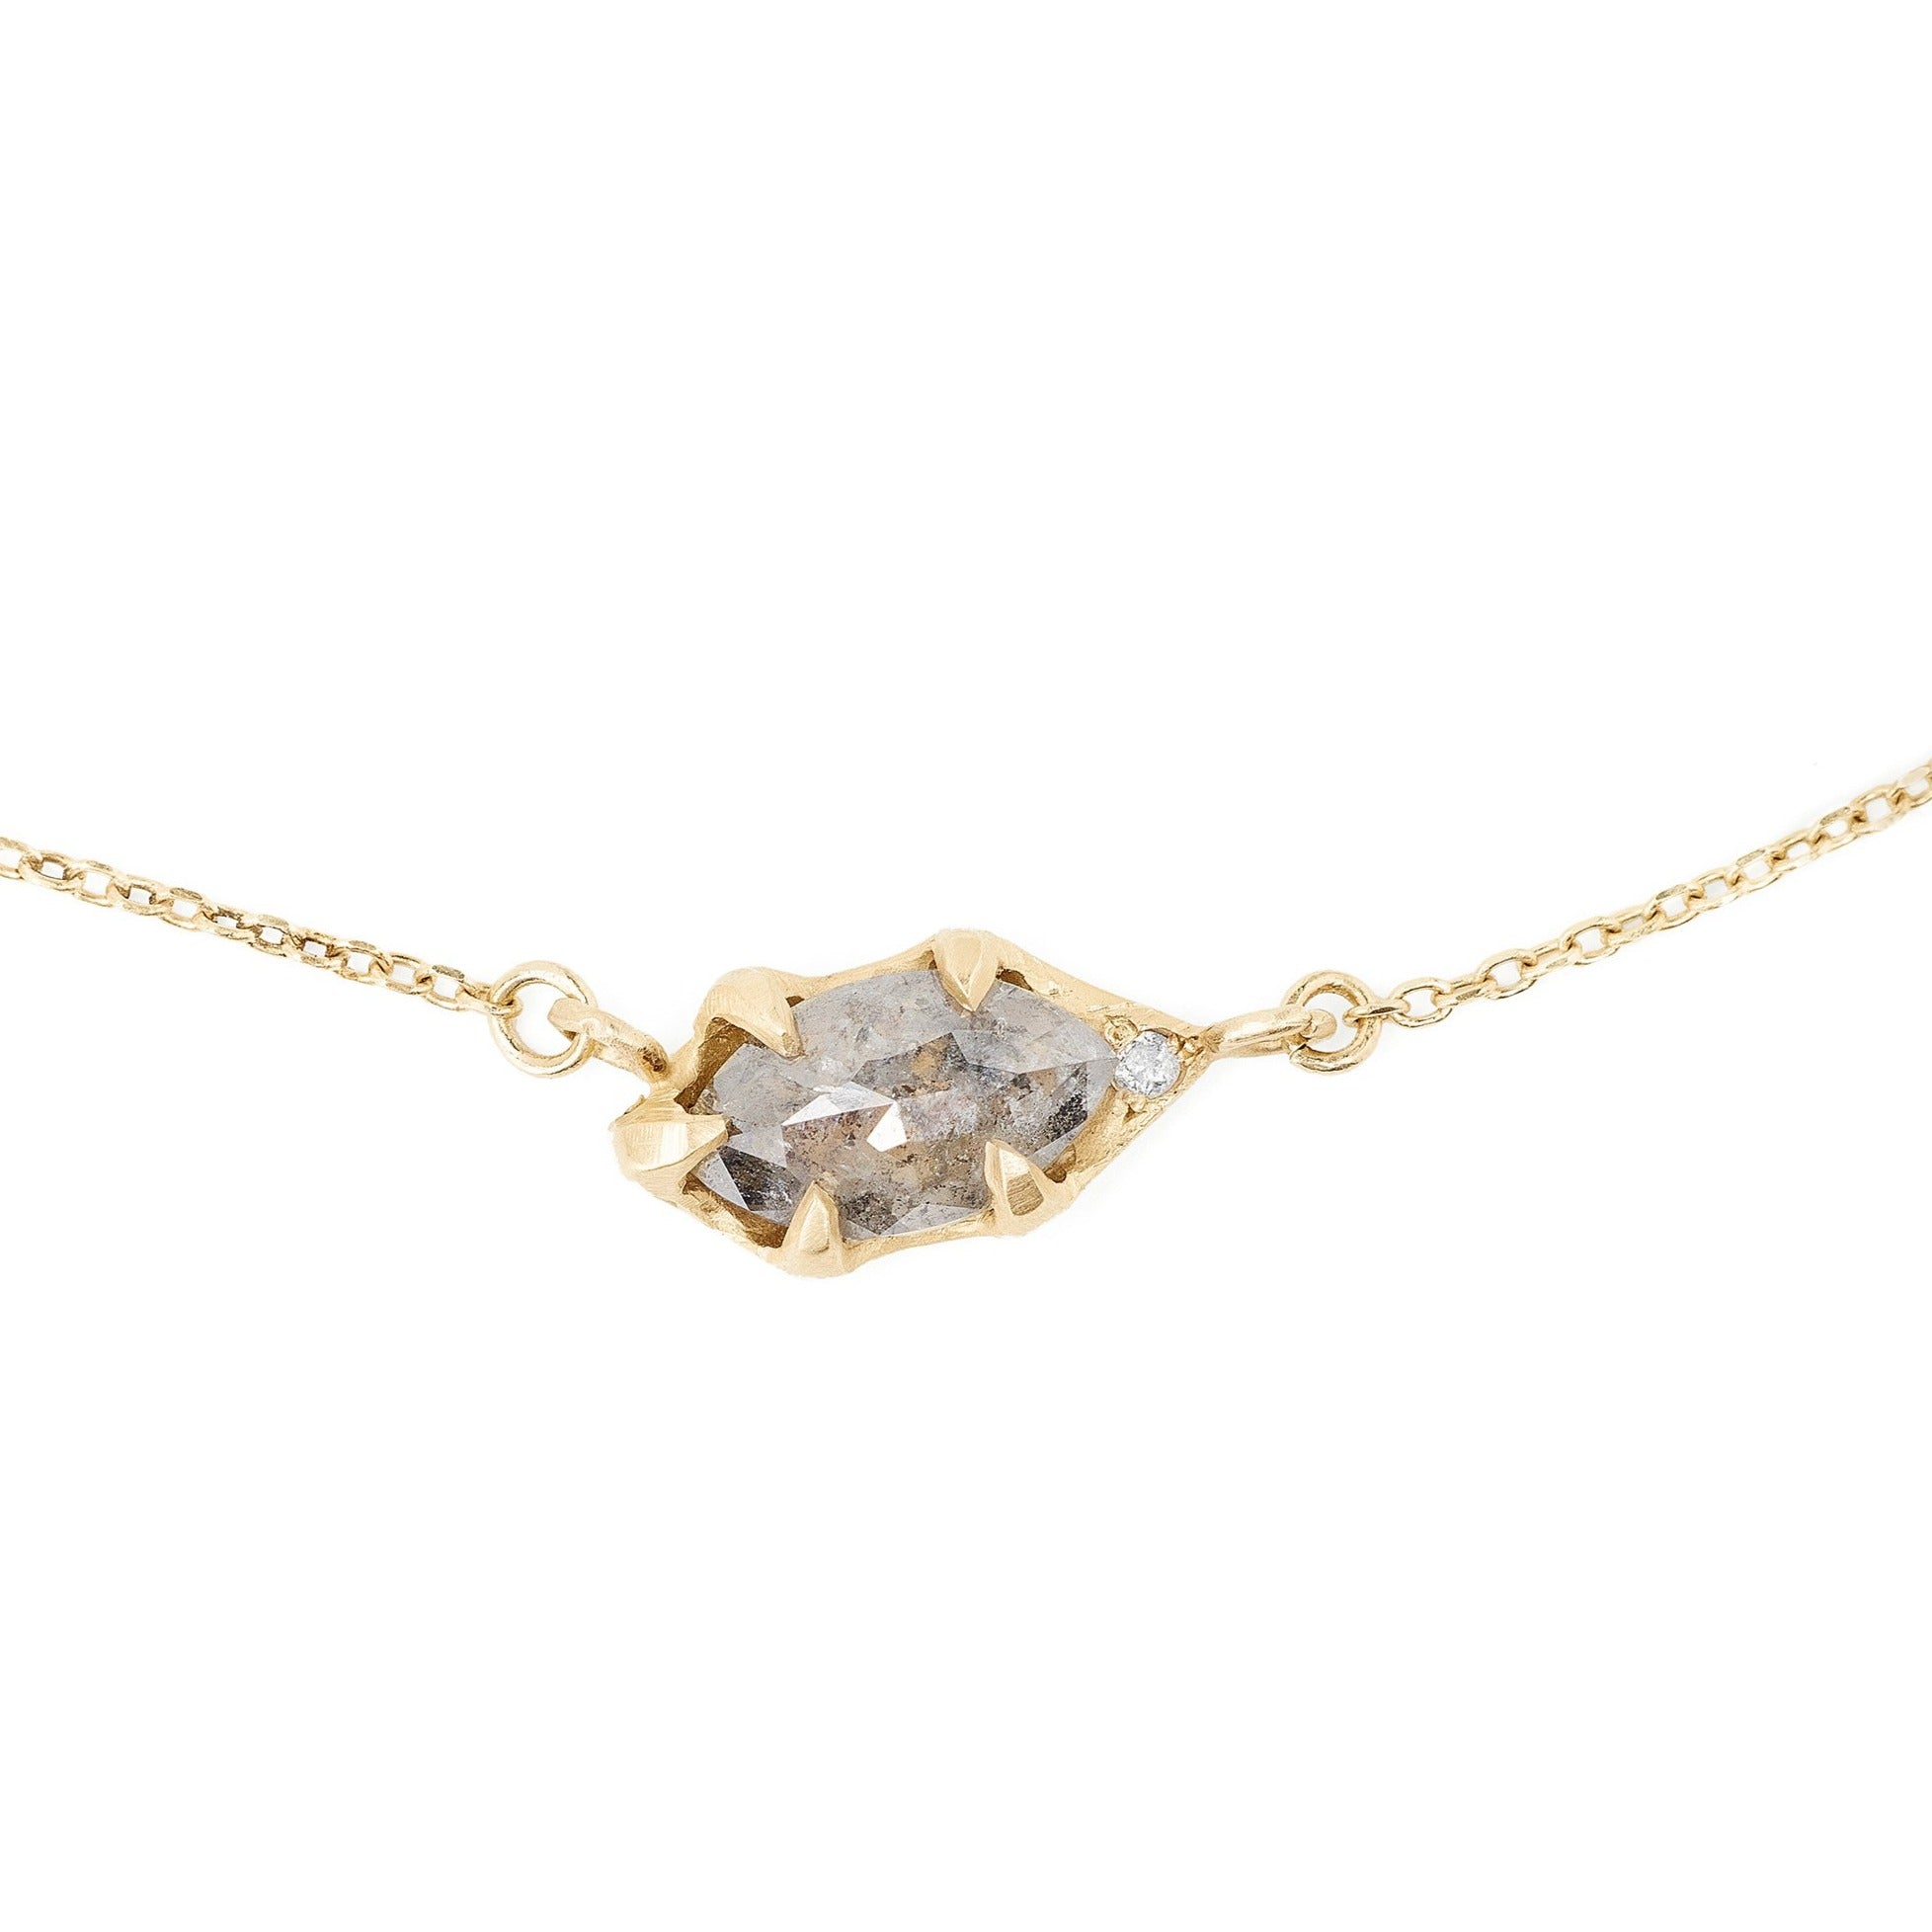 Salt and pepper rose cut diamond necklace set in 14kt gold delicate and simple with a hidden pink diamond accent